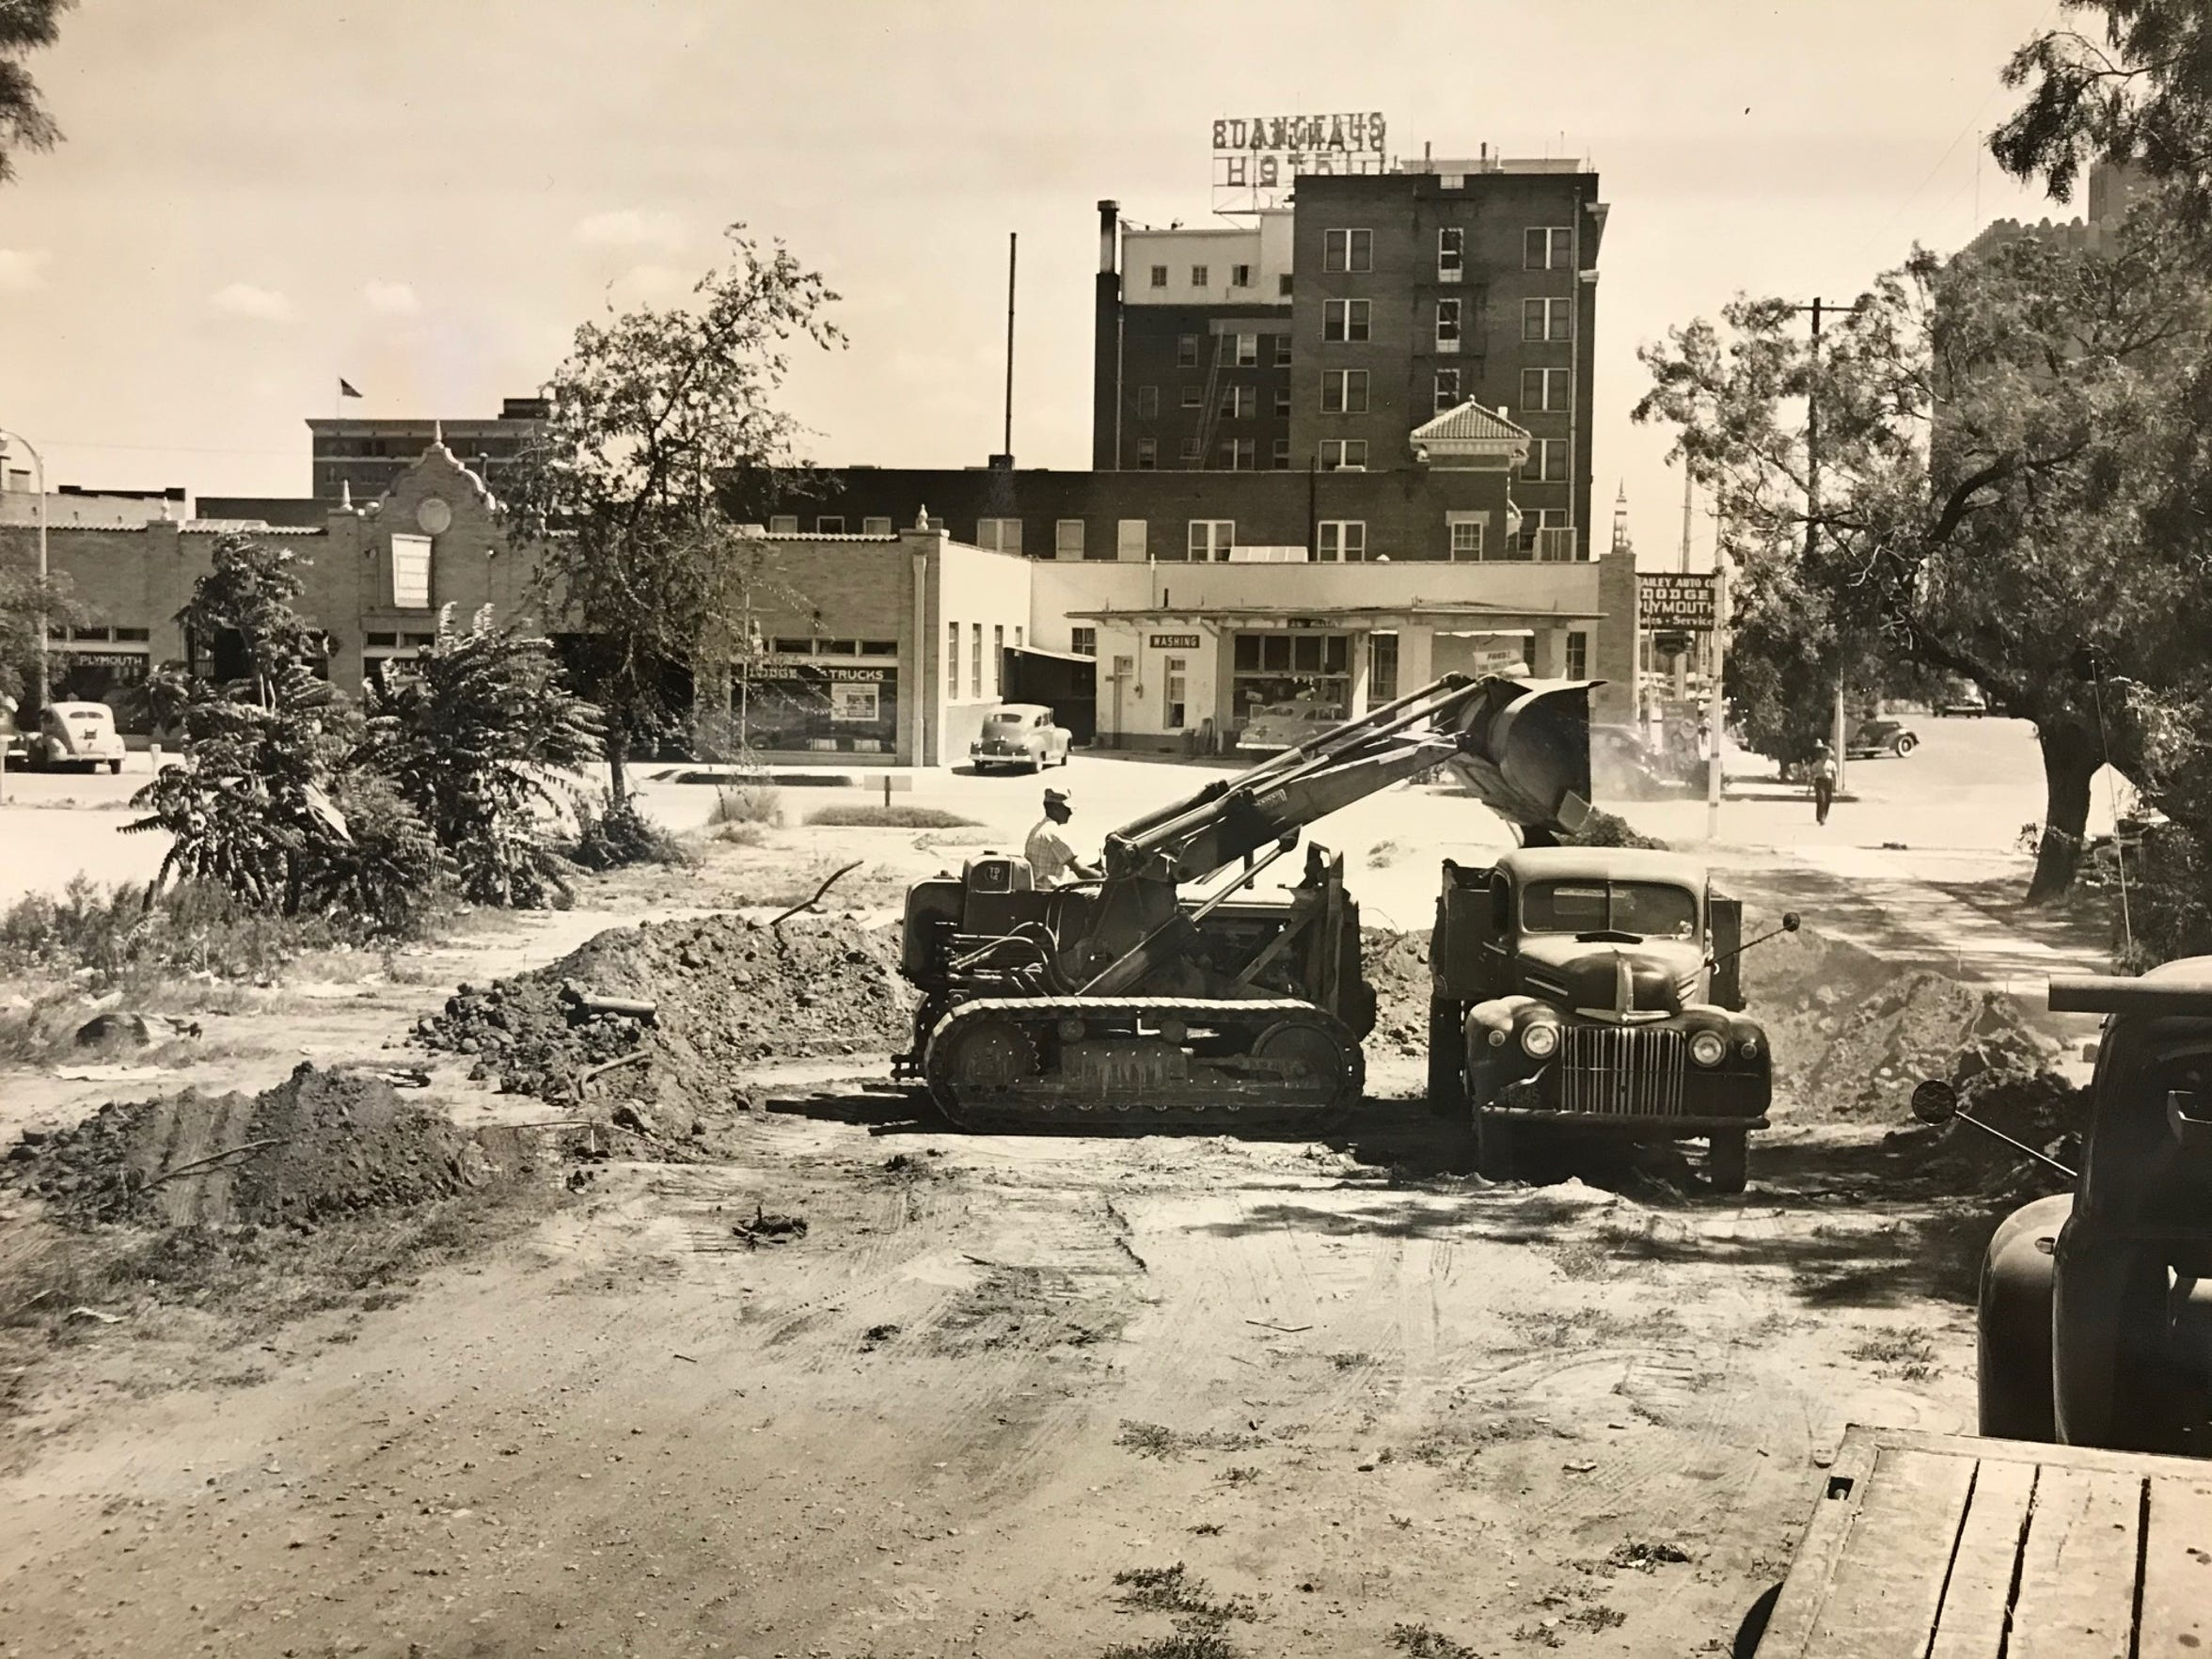 Occupying a central position in the 100 block of South Irving Street, the old San Angelo City Hall building and fire station is seen here between the St. Angelus Hotel and a corner filling station, as workers from Reece Albert dig what will become the basement of the Standard-Times building in the early 1950s.